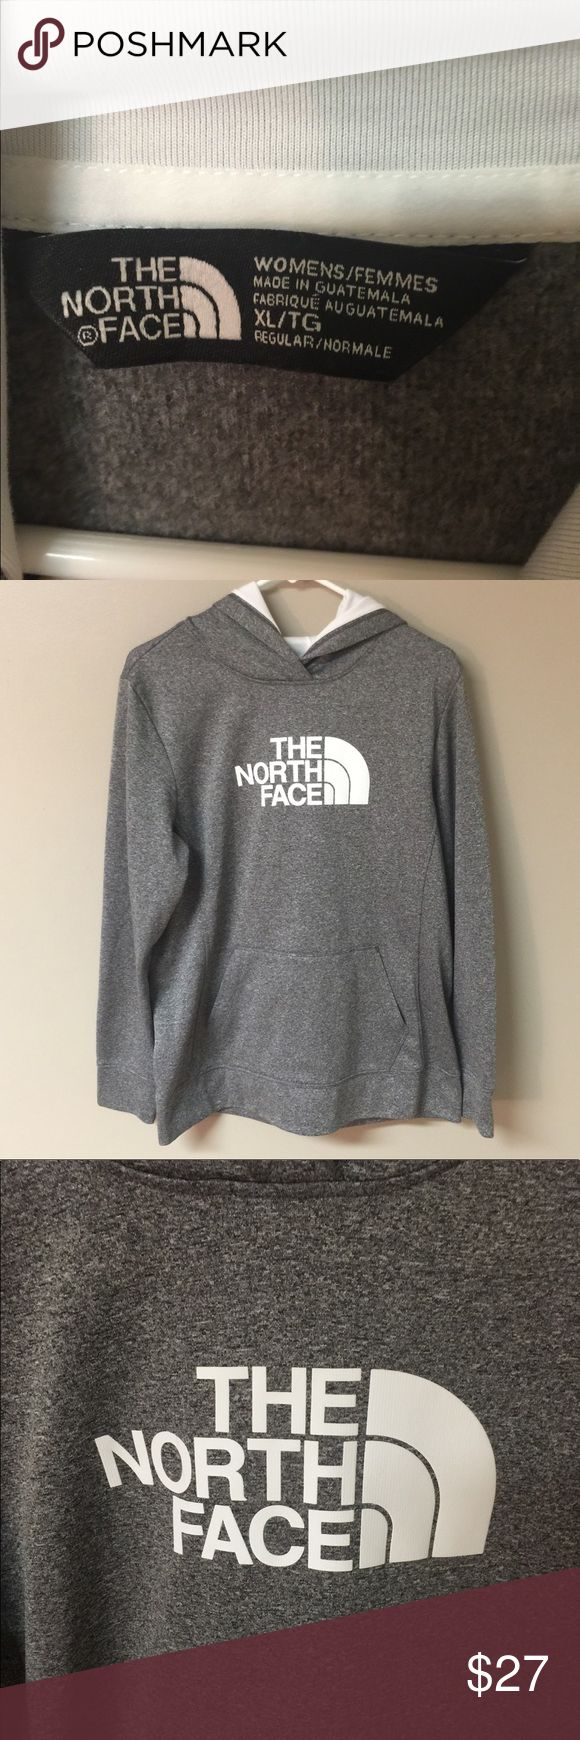 Women's North Face Hoodie Women's North Face Hoodie • only wore once • white & grey in color • size XL The North Face Tops Sweatshirts & Hoodies